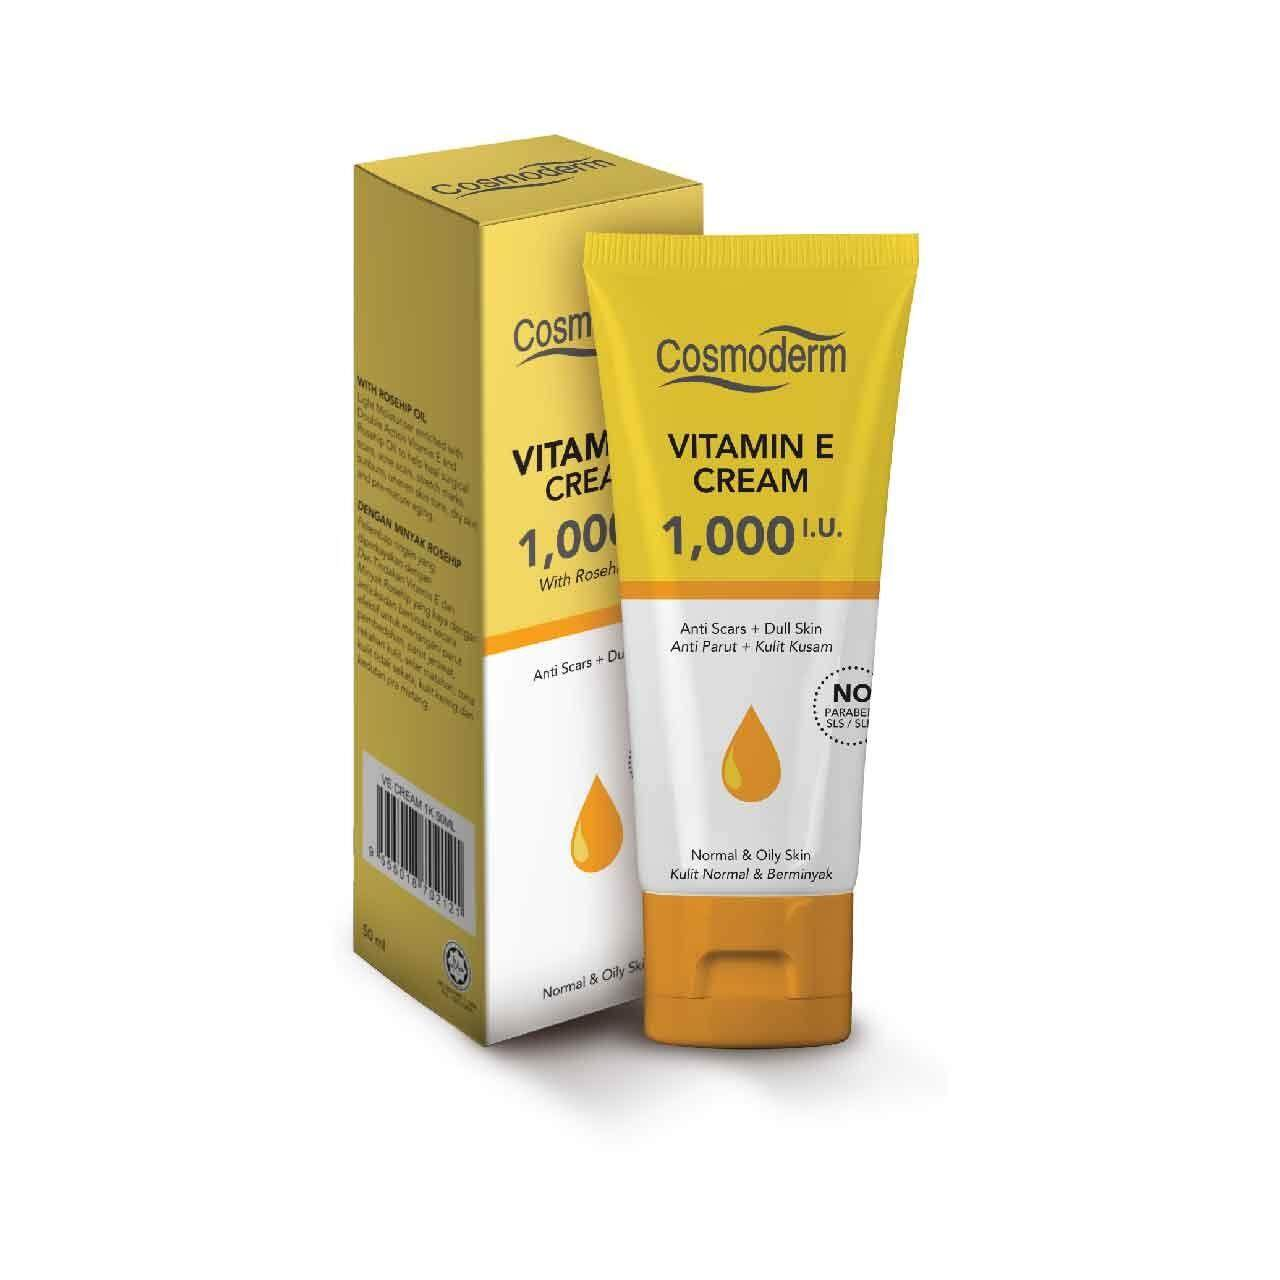 Cosmoderm Vitamin E Cream 1000 IU 50ml